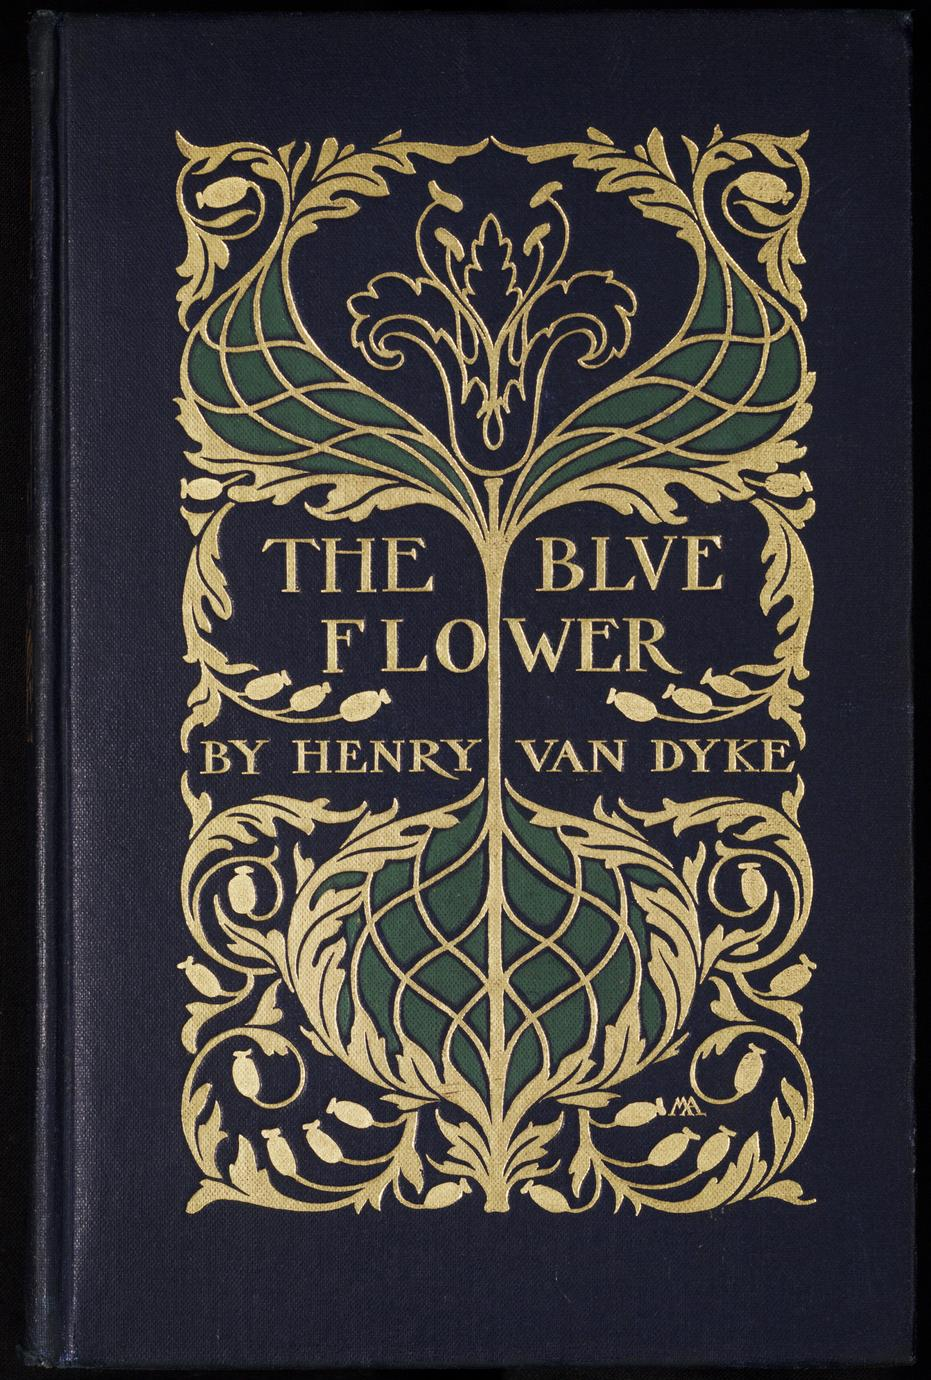 The blue flower (1 of 3)